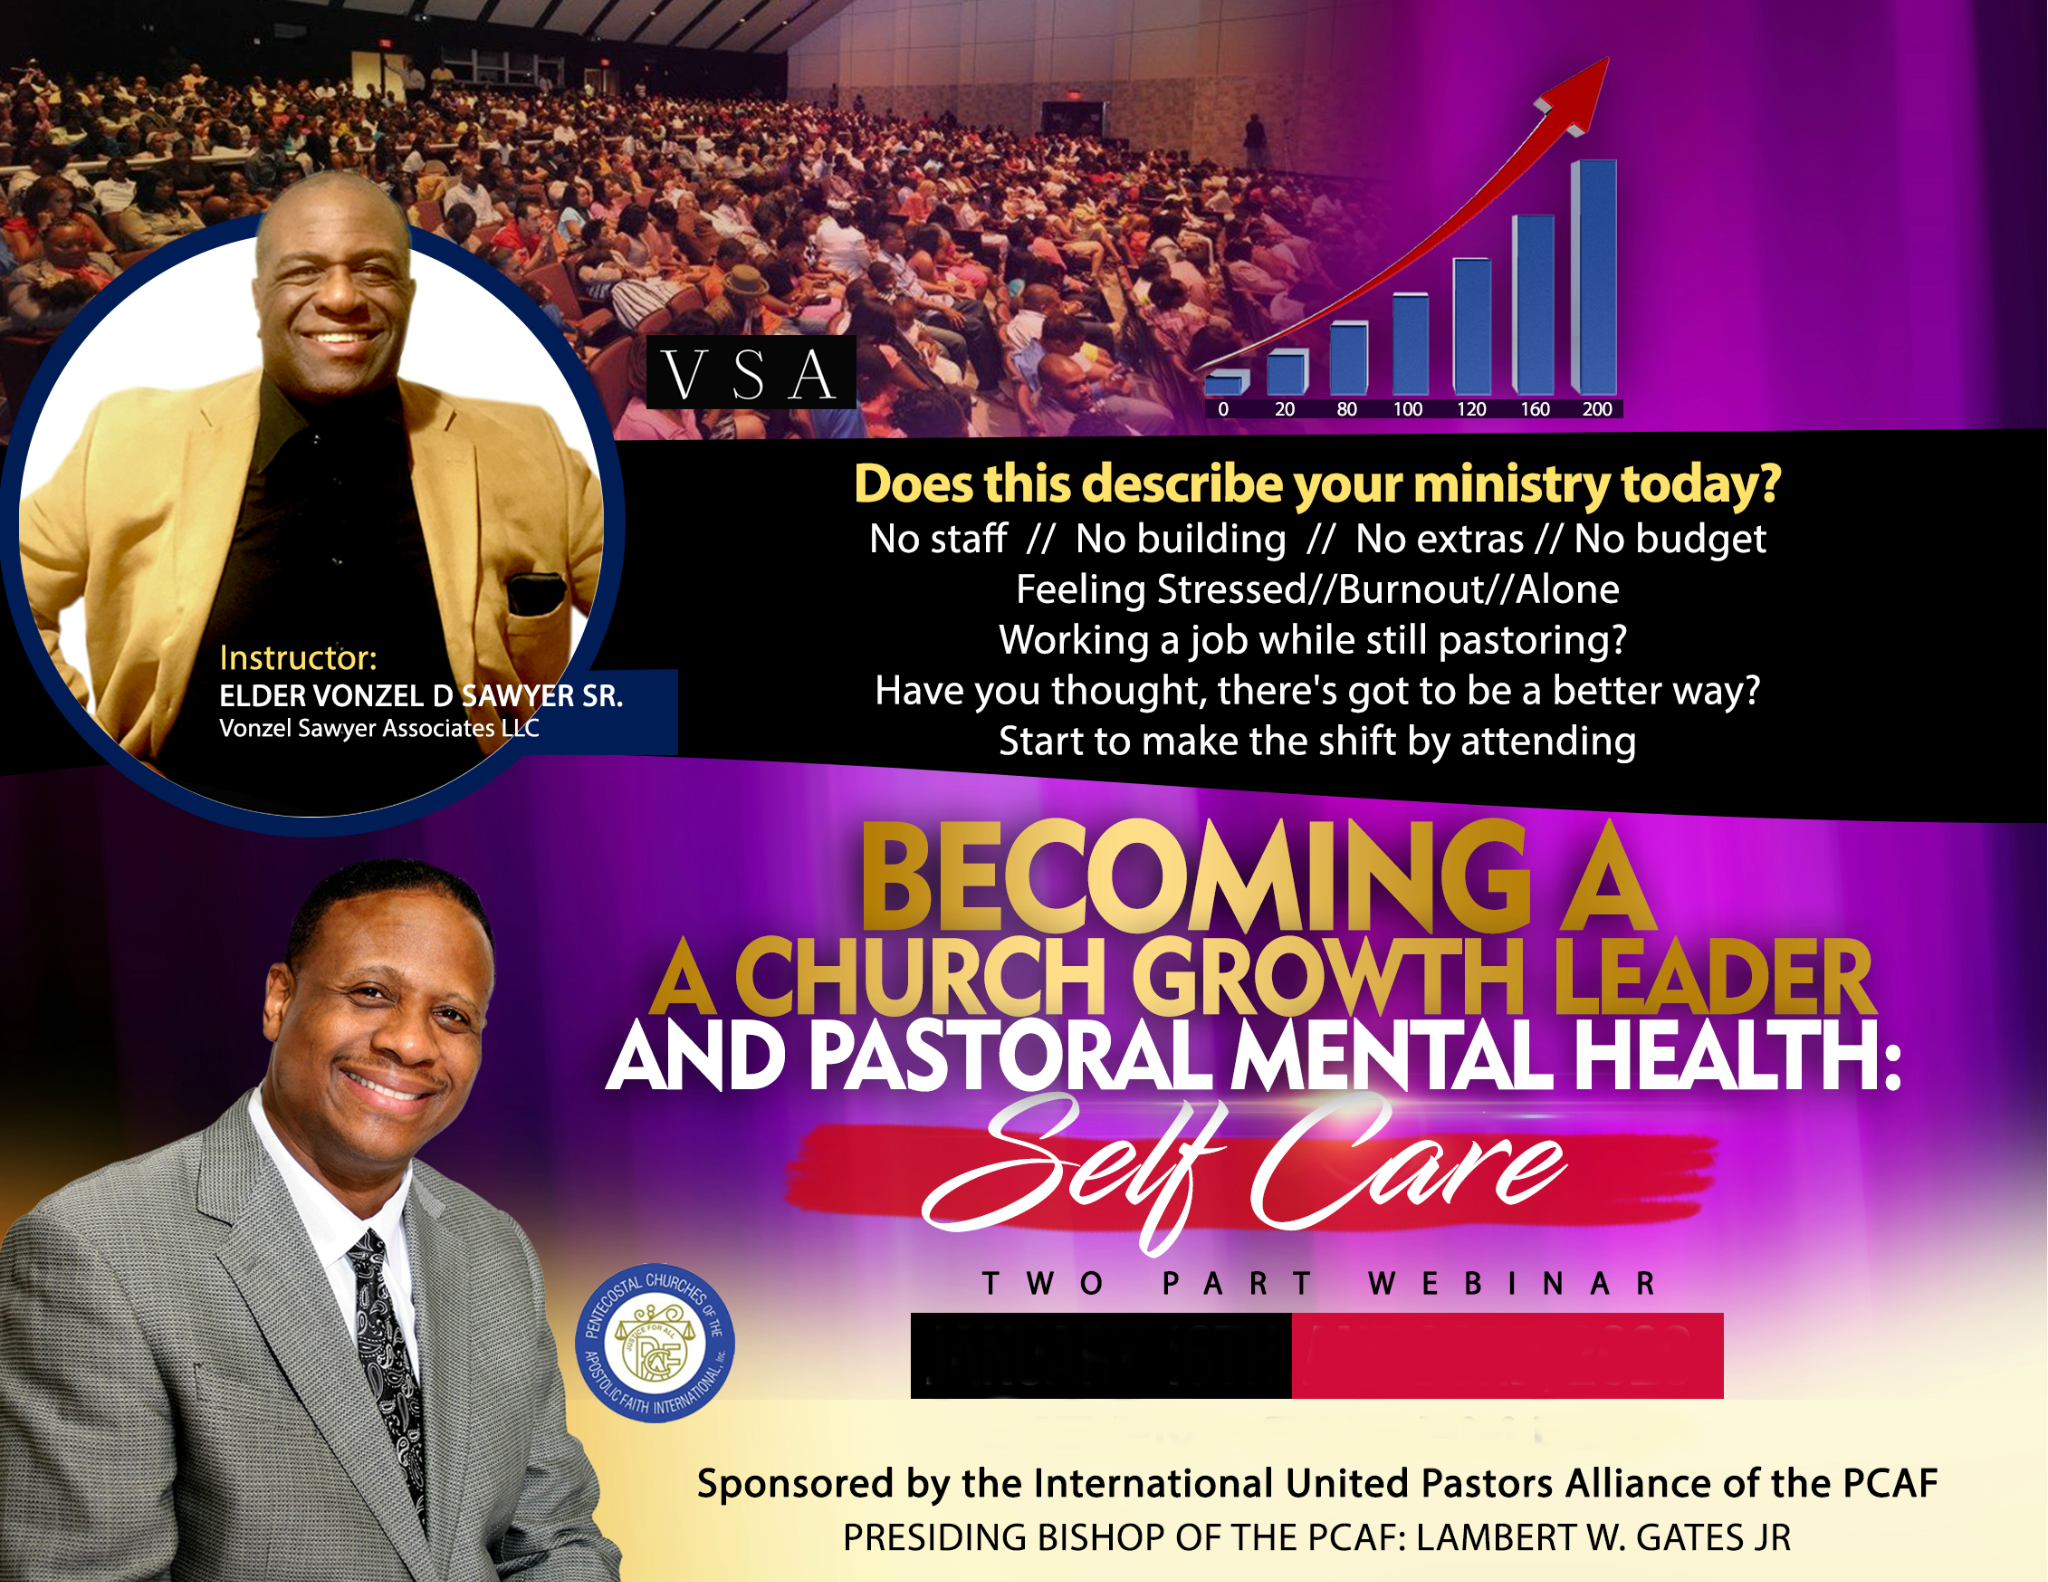 Becoming a Church Growth Leader and Pastoral Mental Health: Self Care